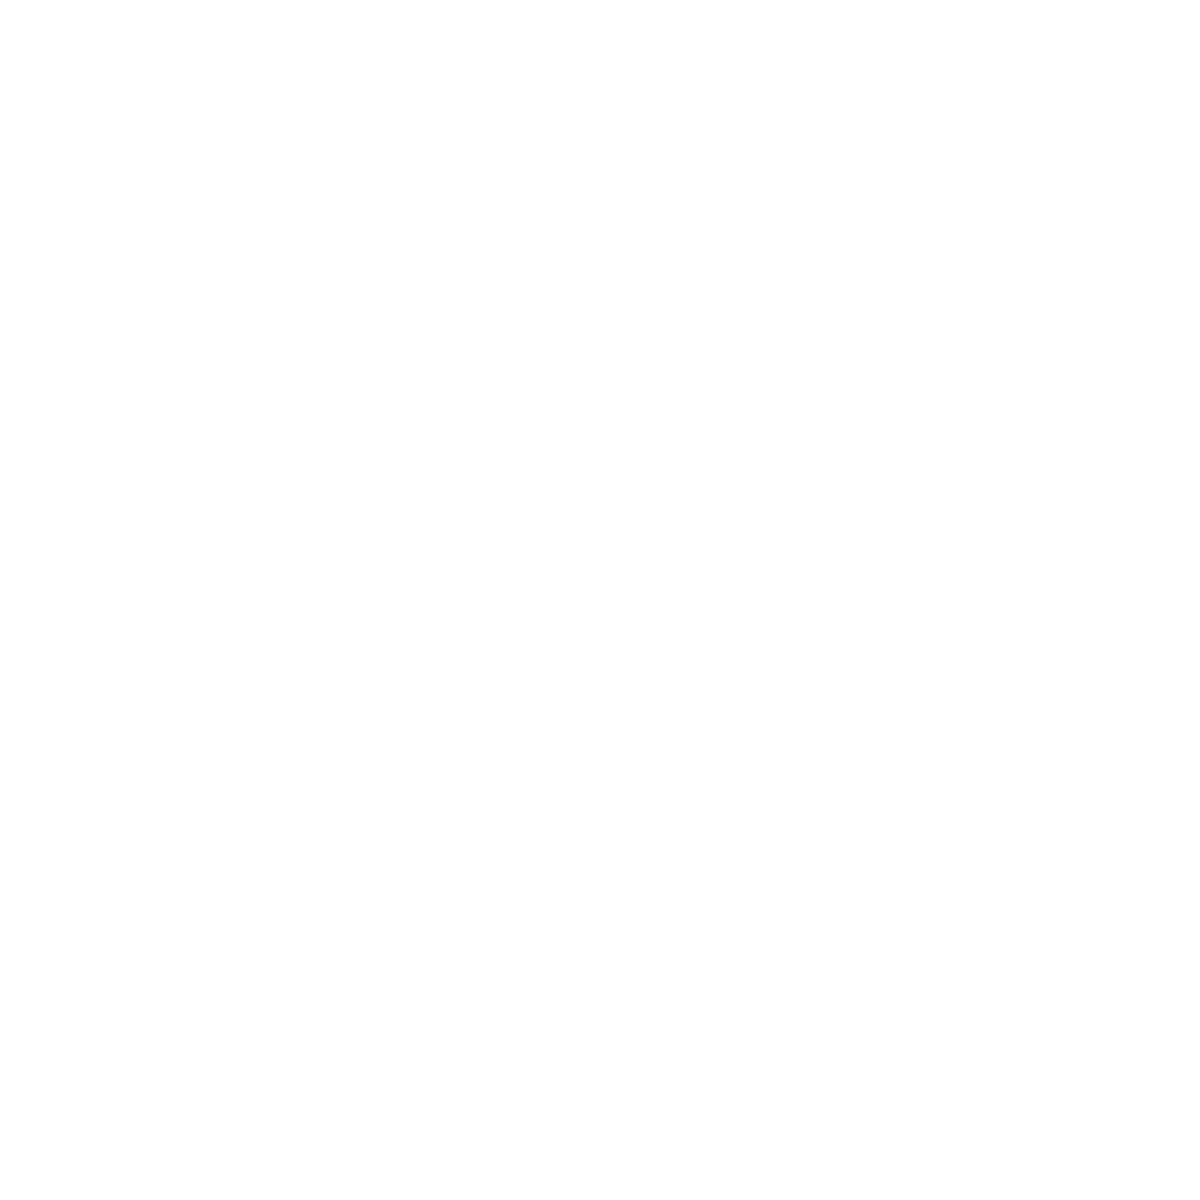 <b>Broadband Compare Awards 2020</b><br>16 October 2020 | Auckland